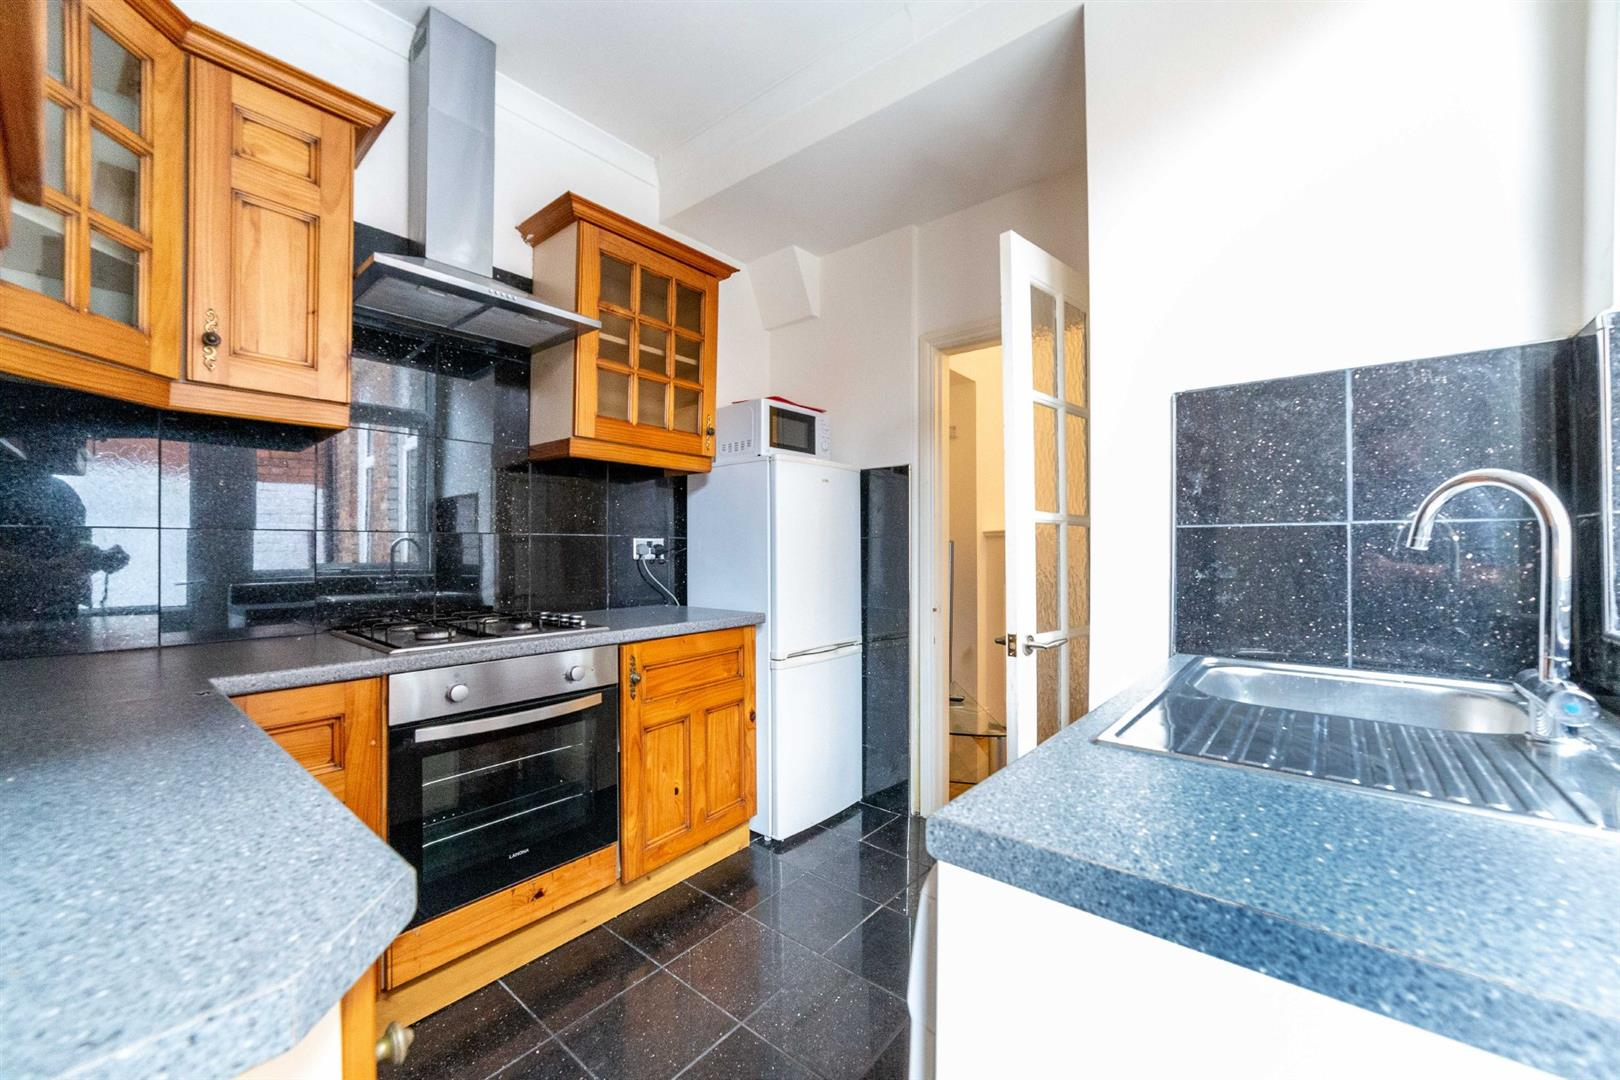 2 bed flat to rent in Newcastle Upon Tyne, NE2 2NJ 1